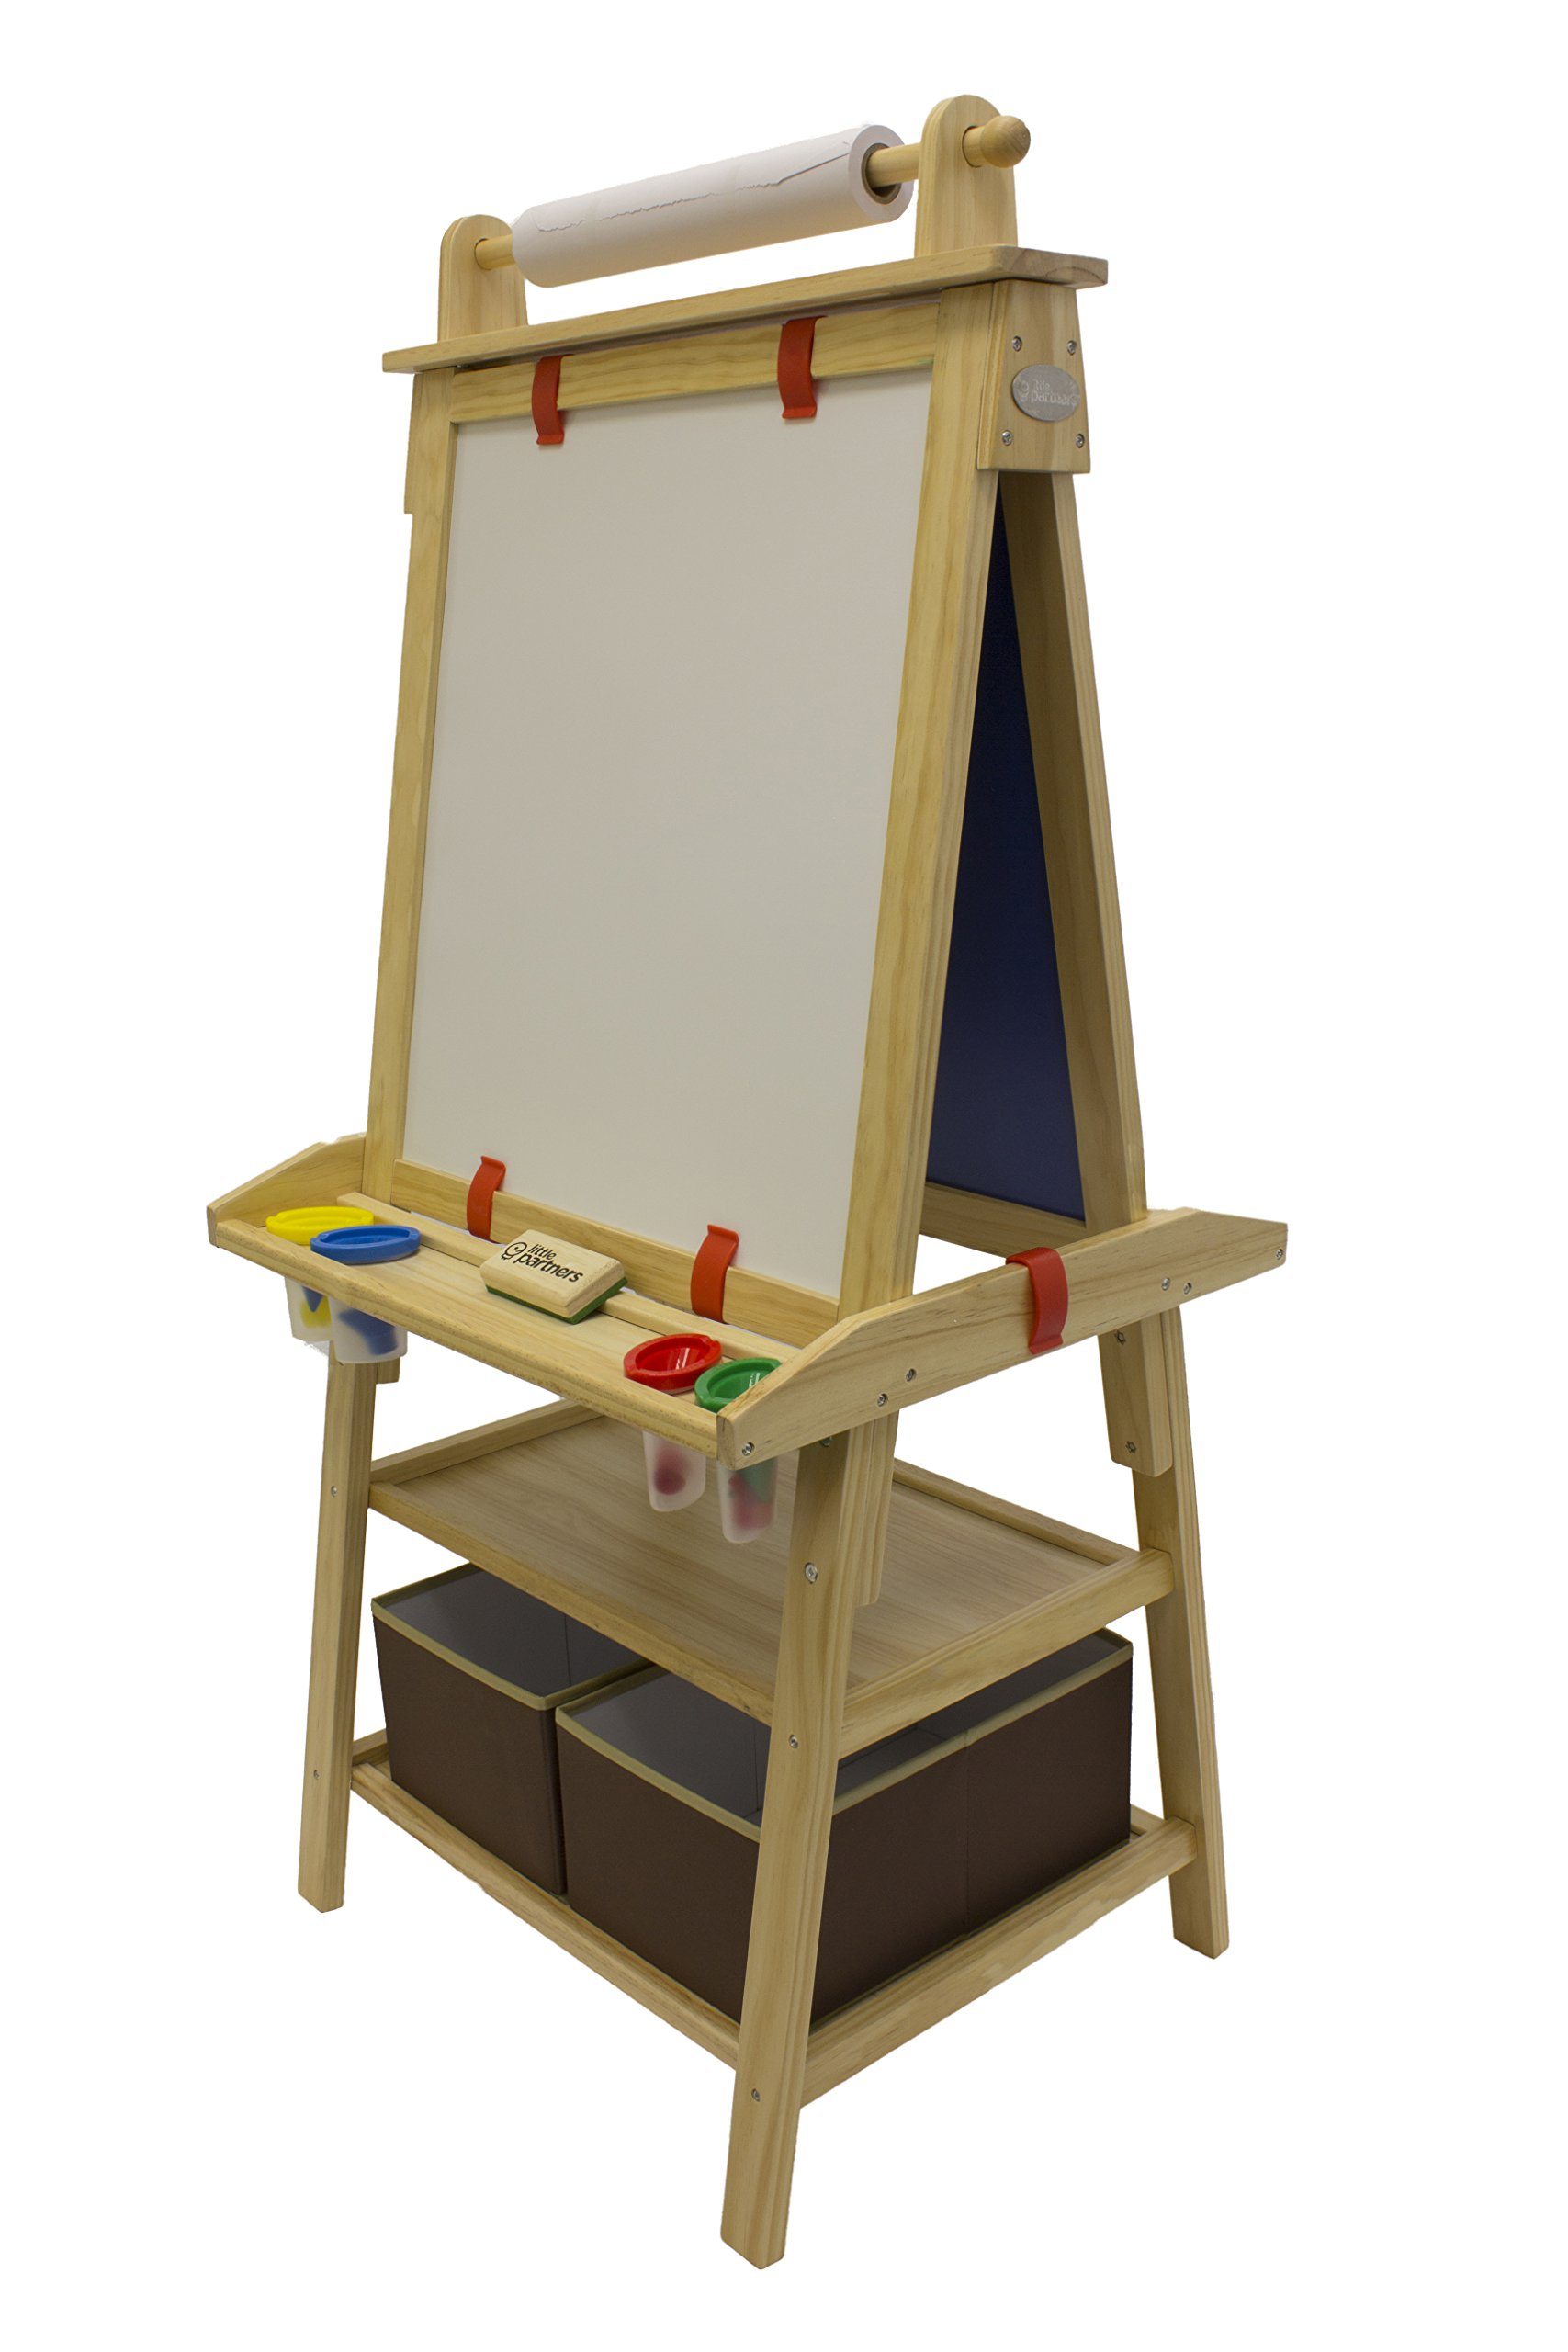 Little Partners 2-Sided A-Frame Art Easel with Chalk Board, Magnetic Dry Erase, Storage, Paper Feed and Accessories for Toddlers, Natural